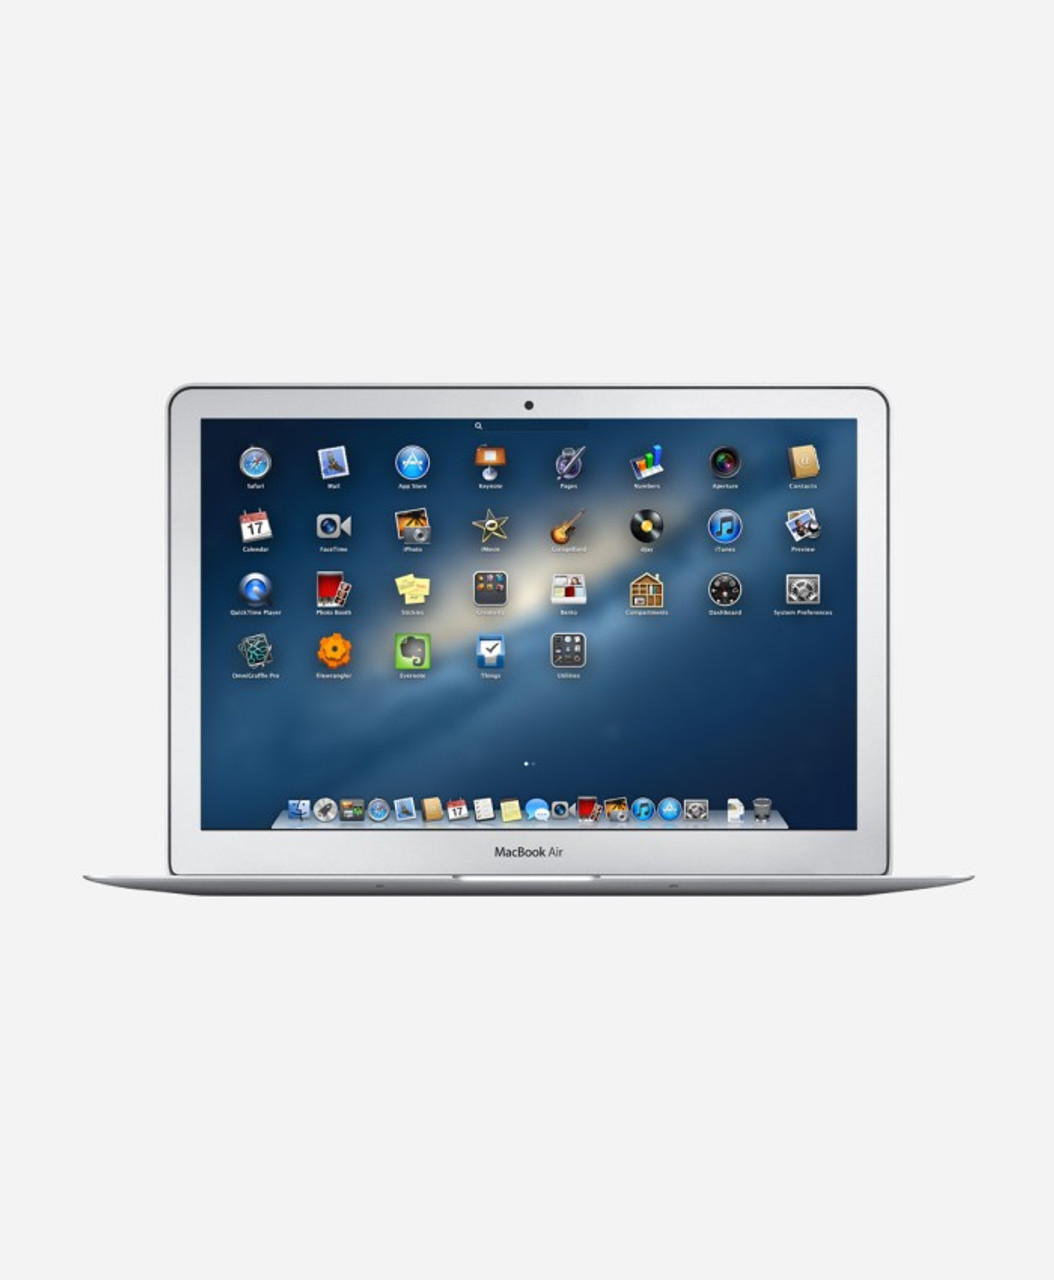 c49191d483e Used Apple Macbook Air 13.3-inch (Glossy) 1.8GHZ Dual Core i5 (Mid ...